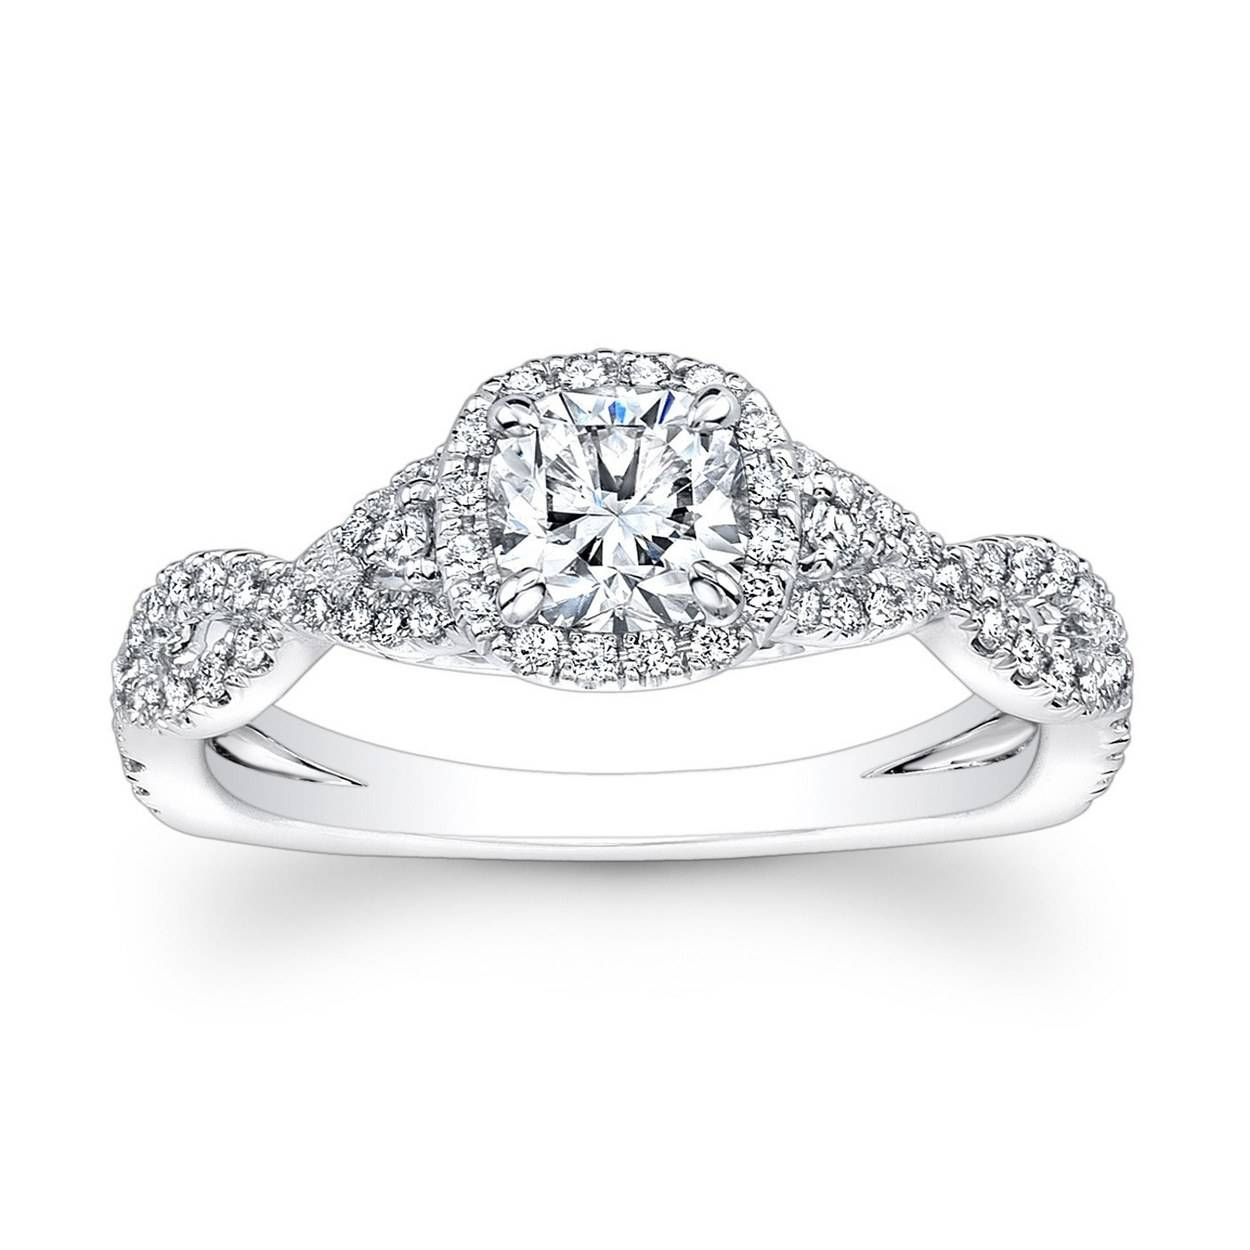 62 Diamond Engagement Rings Under $5,000 | Glamour With Most Popular Square Cut Diamond Wedding Bands (Gallery 14 of 15)